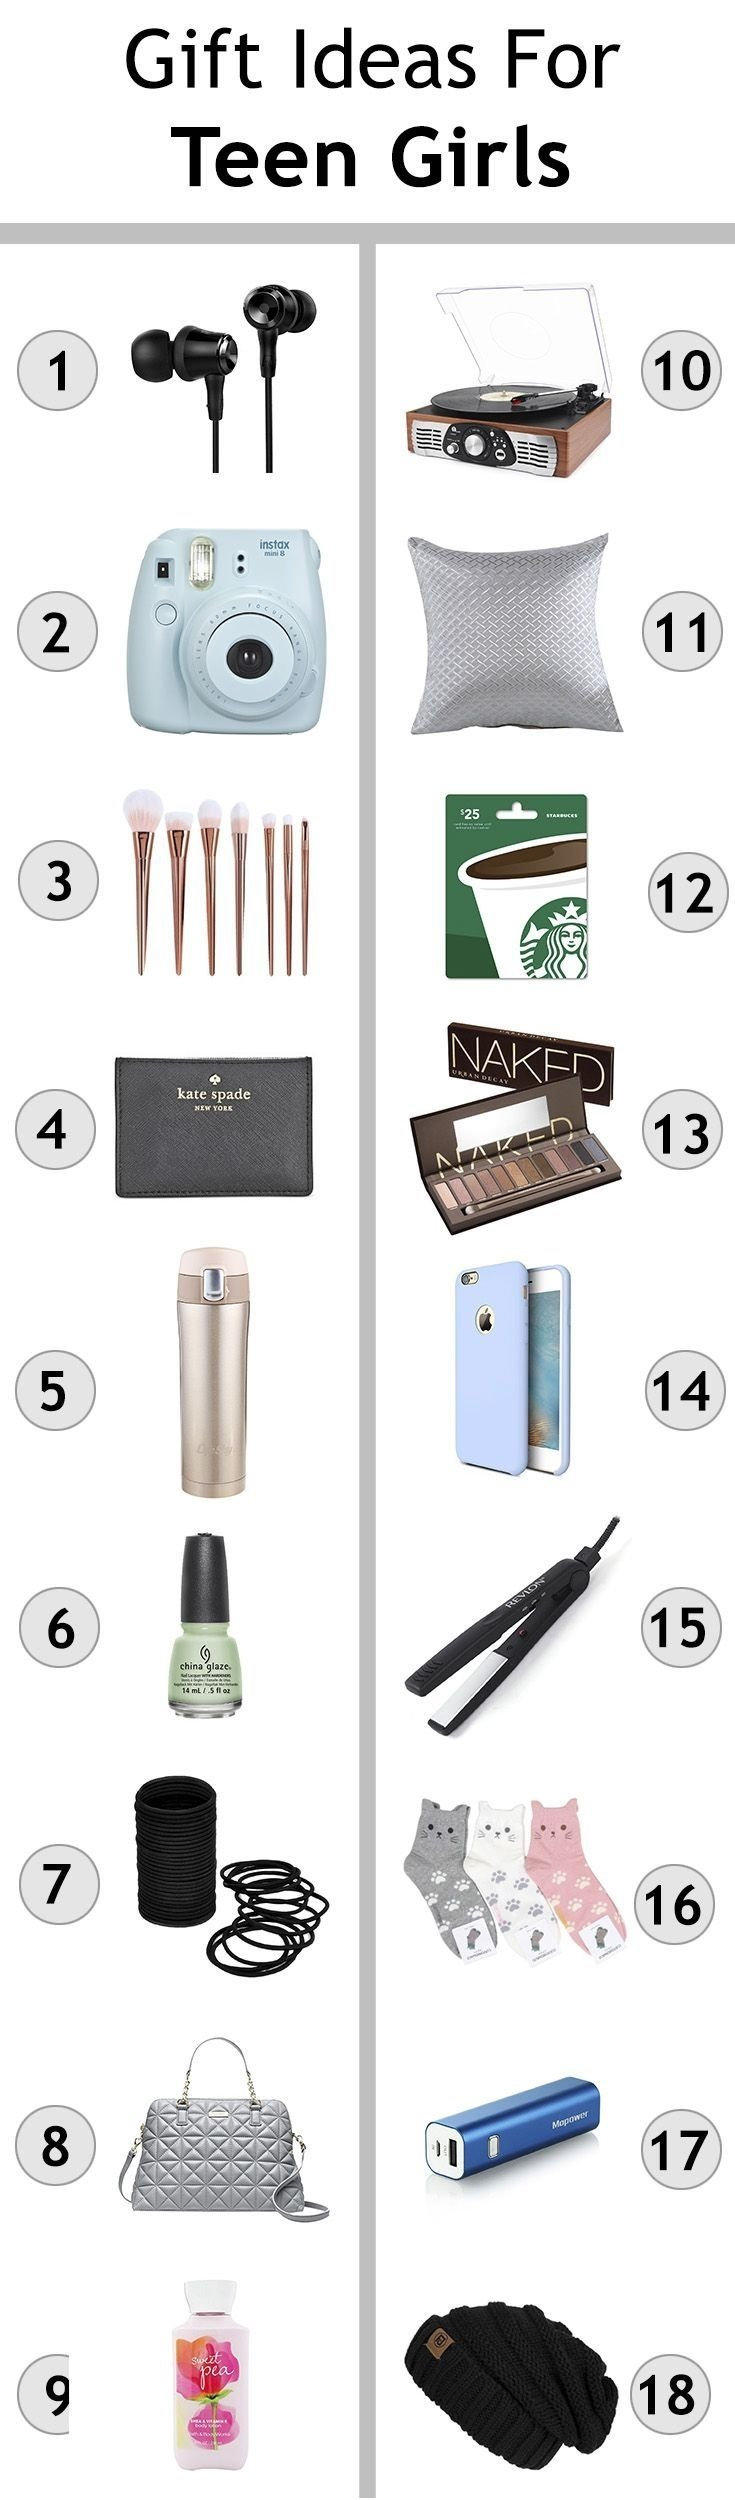 10 Nice Gift Ideas For 13 Year Old Daughter